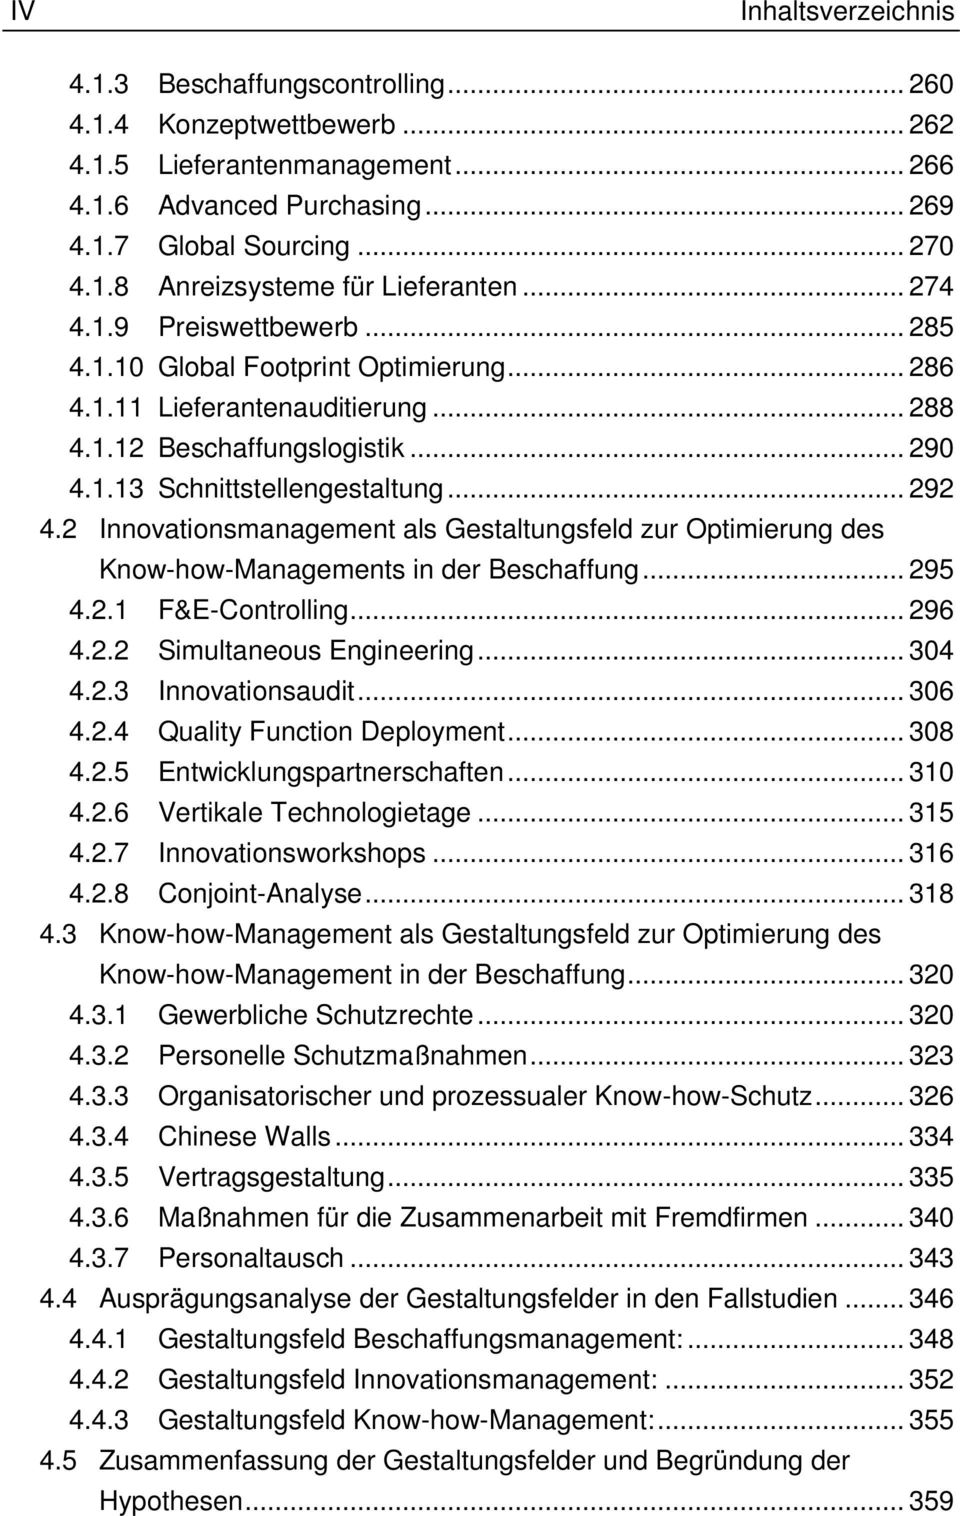 2 Innovationsmanagement als Gestaltungsfeld zur Optimierung des Know-how-Managements in der Beschaffung... 295 4.2.1 F&E-Controlling... 296 4.2.2 Simultaneous Engineering... 304 4.2.3 Innovationsaudit.